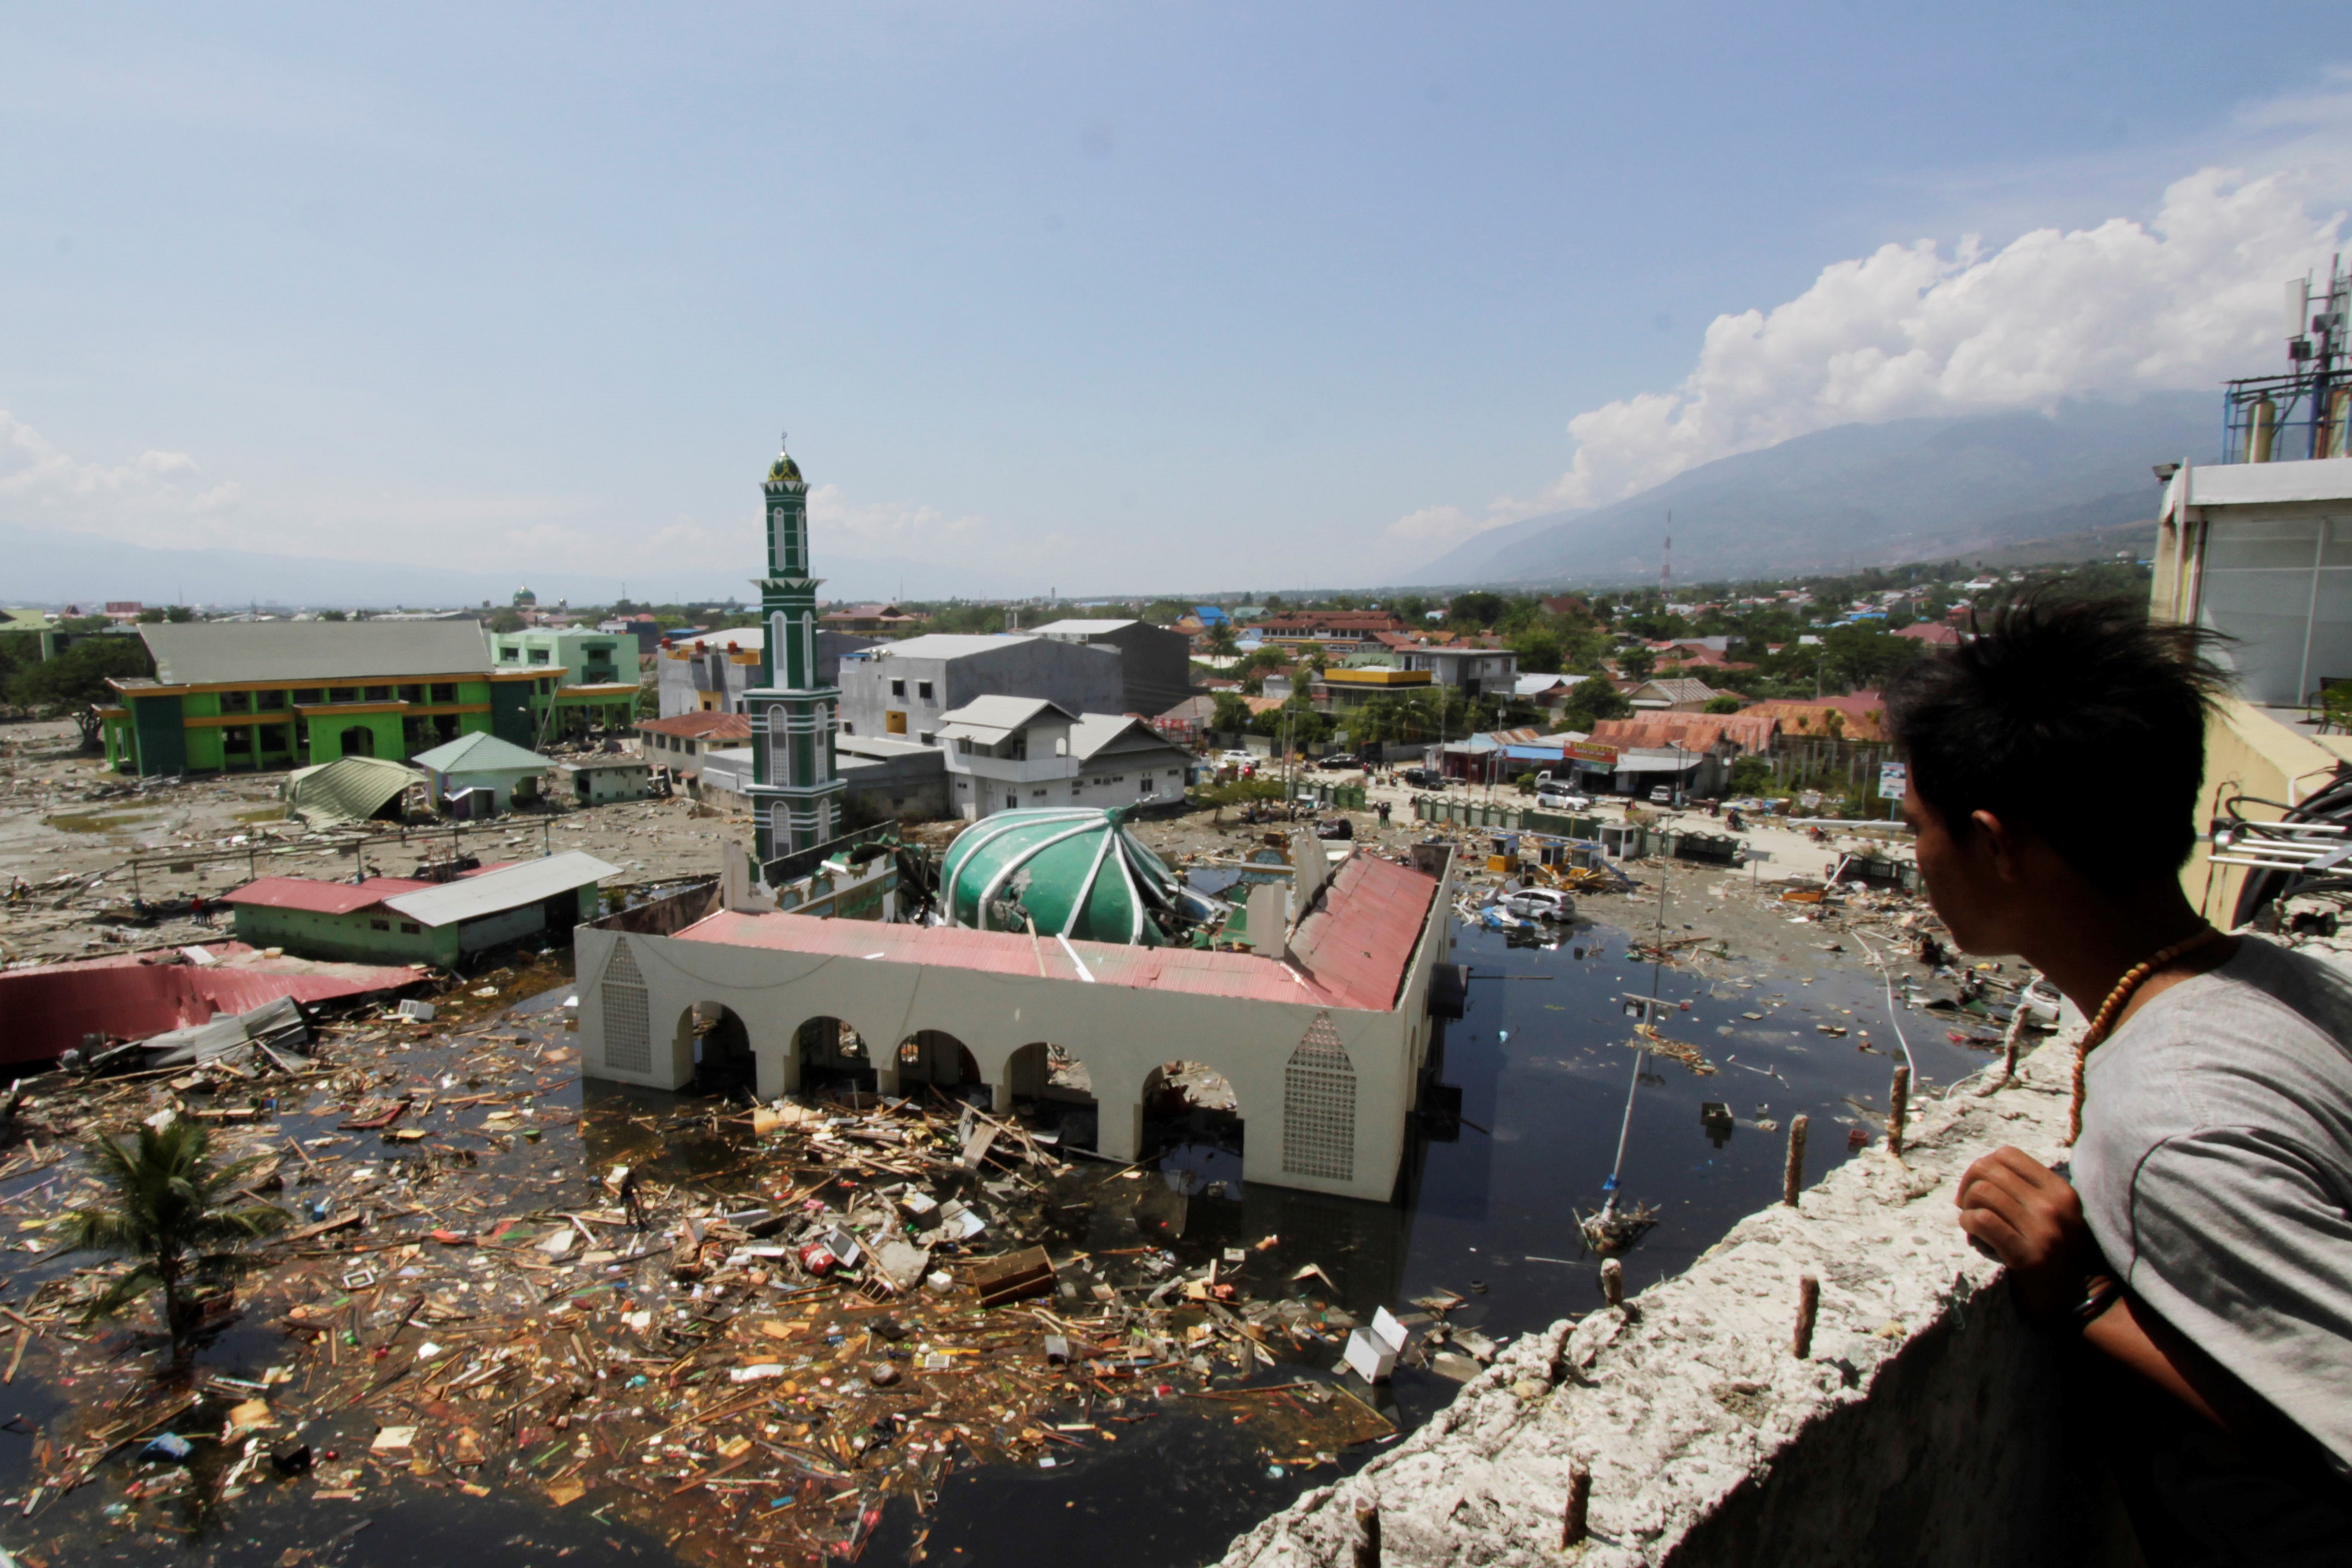 The Baiturrahman mosque is seen after being hit by the earthquake and tsunami in the city of Palu, Central Sulawesi, Indonesia on Oct. 2 2018.